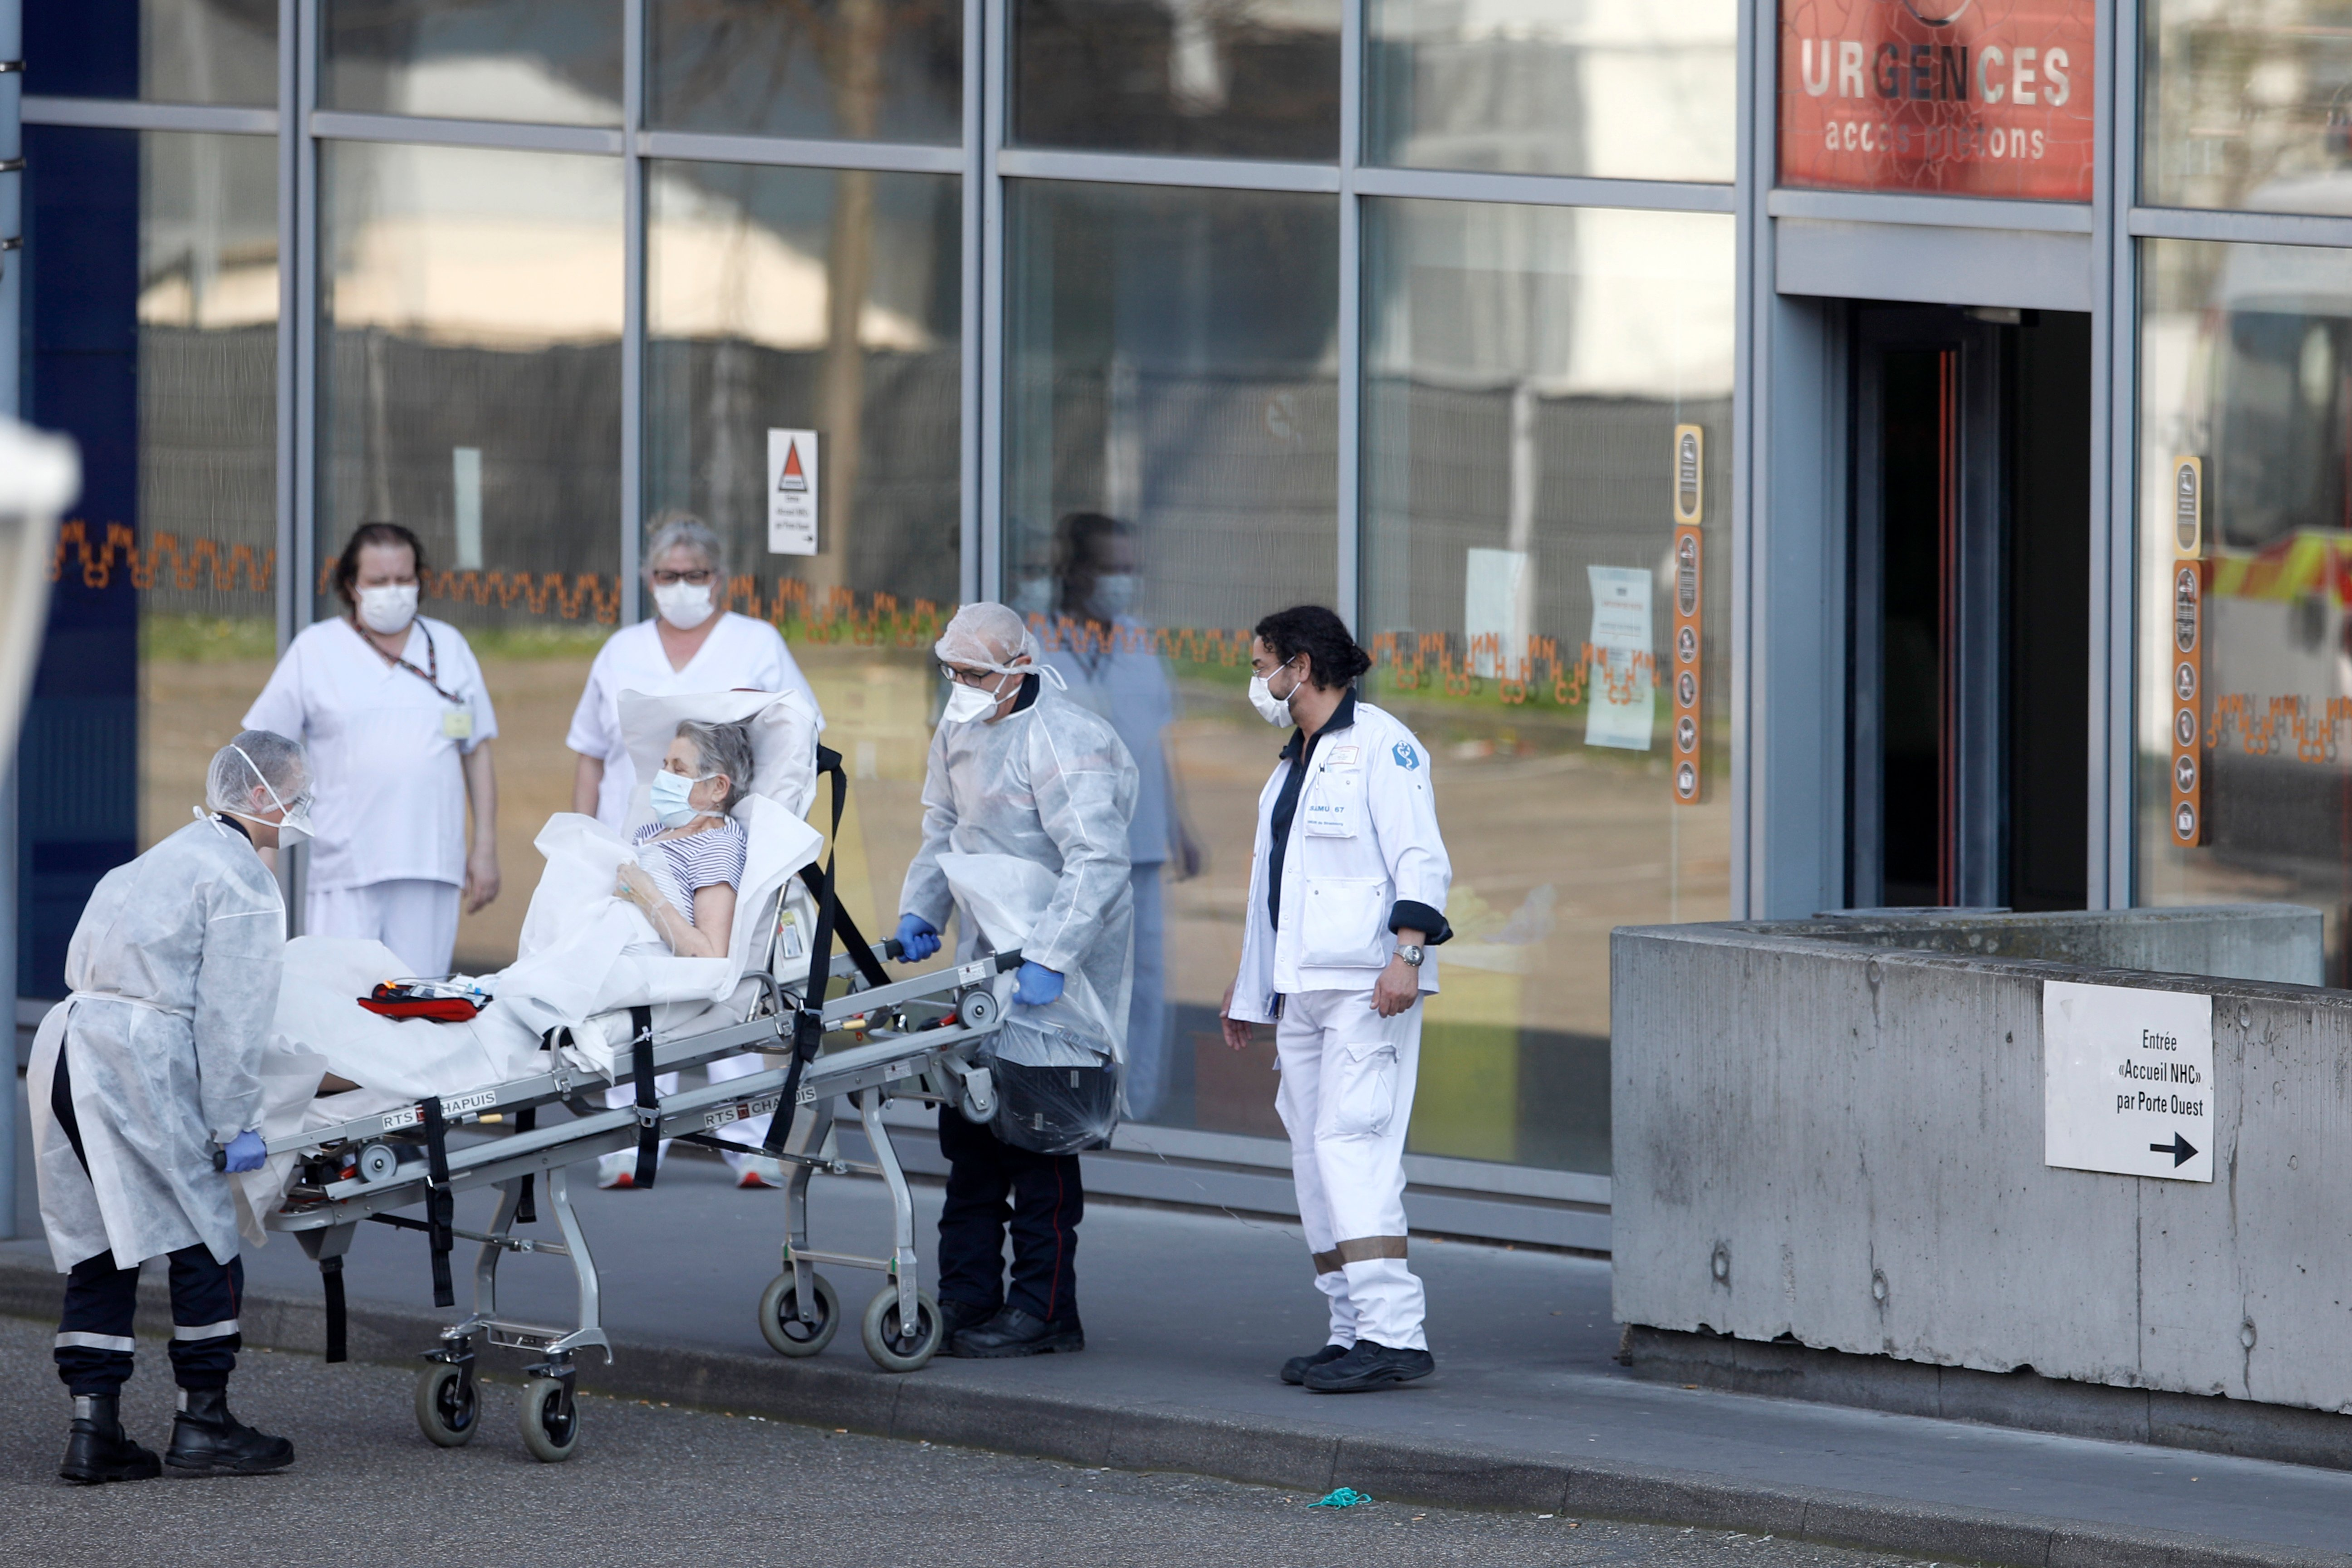 France's health director announces COVID-19 fatalities above 20,000